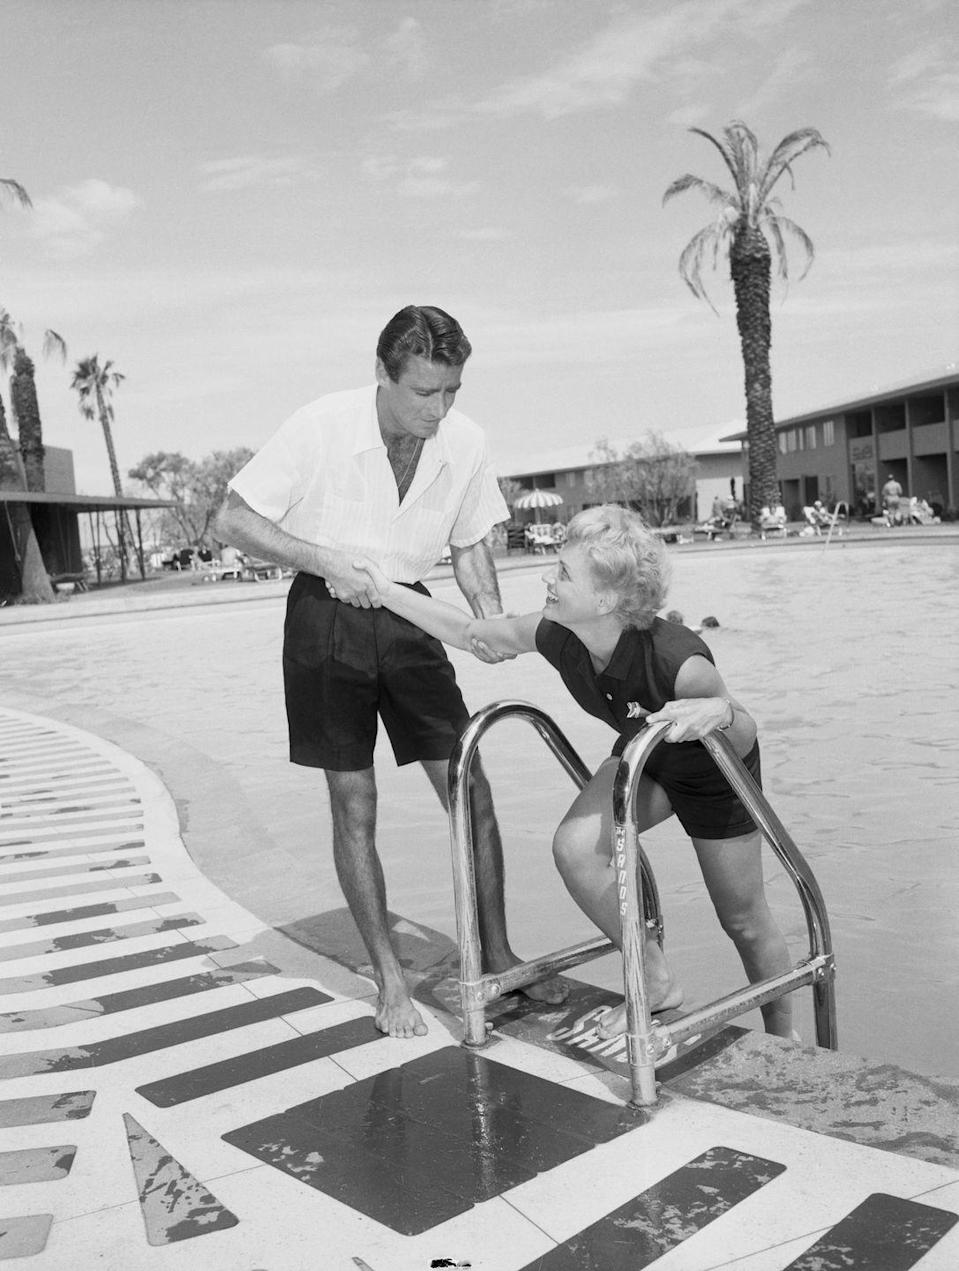 <p>Actors Peter Lawford and Judy Holliday by the pool of the Sands in 1953. The two were costars in the romantic comedy<em> It Should Happen to You</em>.</p>